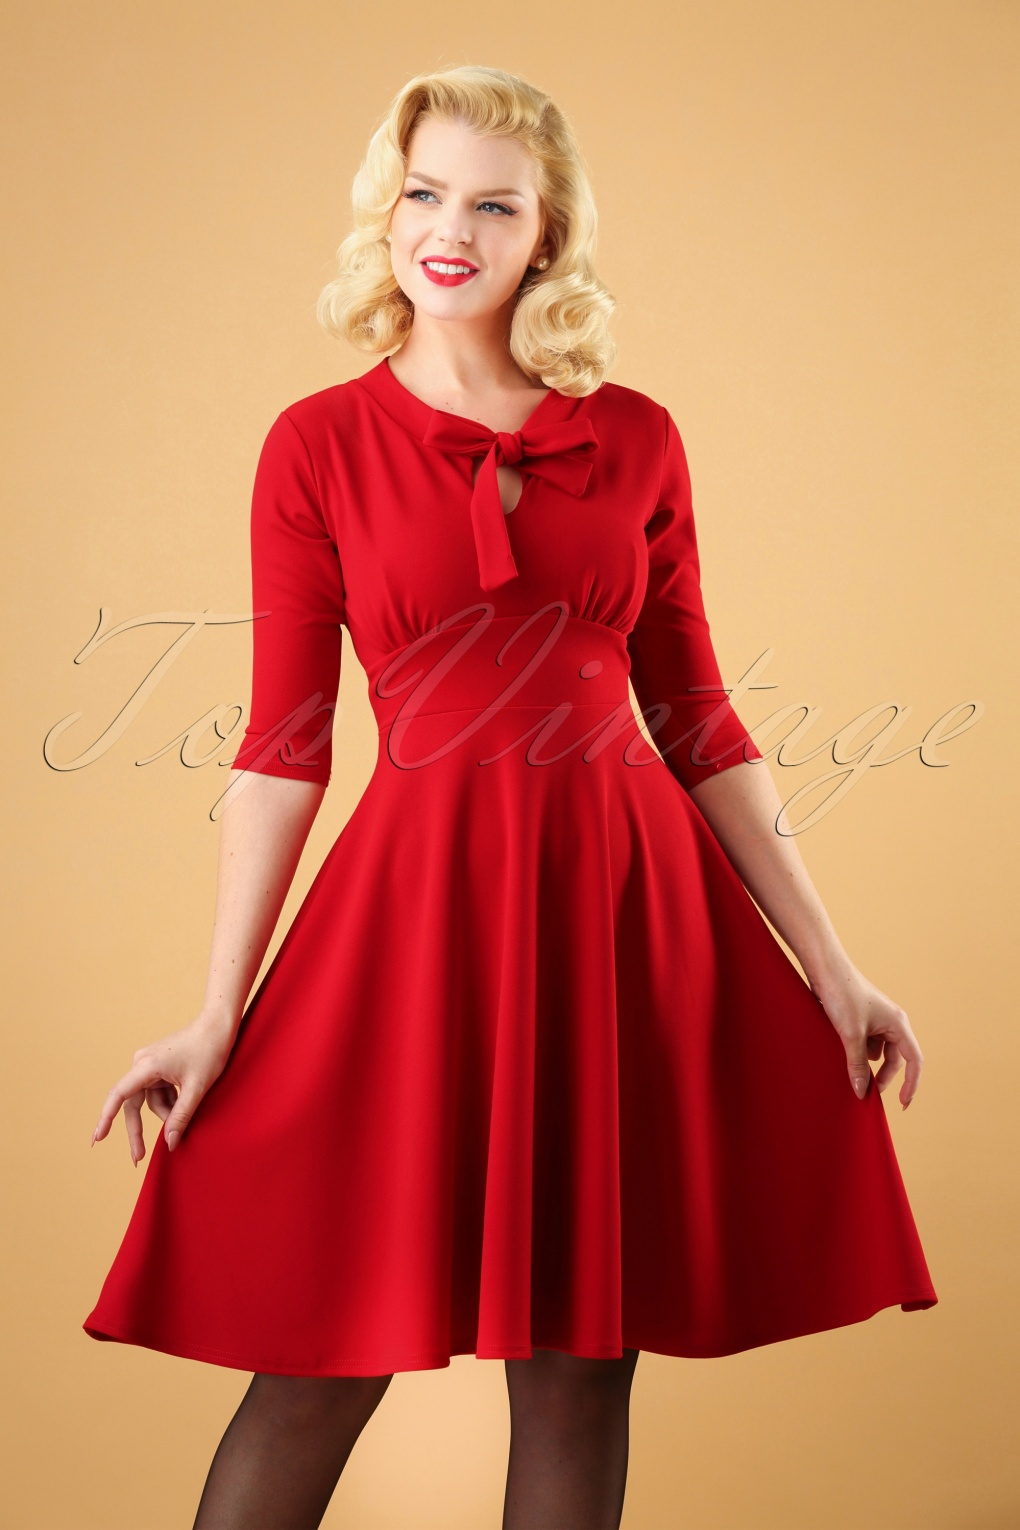 1950s Dresses, 50s Dresses | 1950s Style Dresses 50s Geraldine Swing Dress in Red £53.41 AT vintagedancer.com